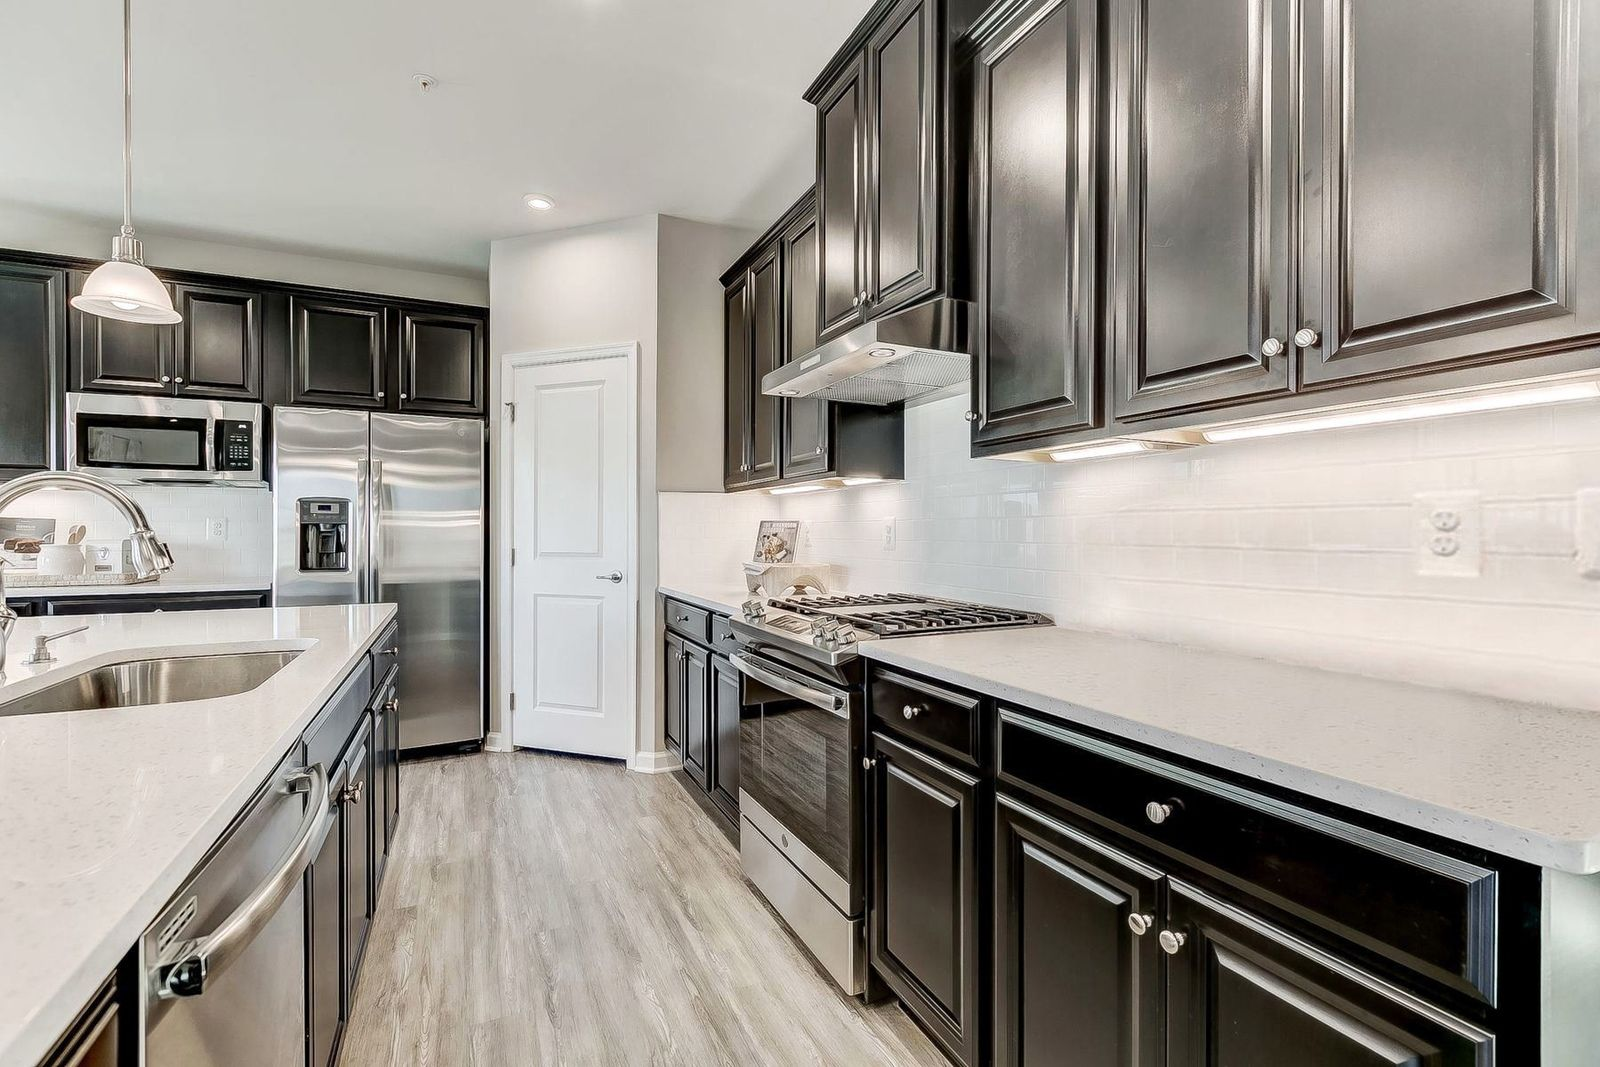 Kitchen featured in the Saint Lawrence By Ryan Homes in Washington, MD